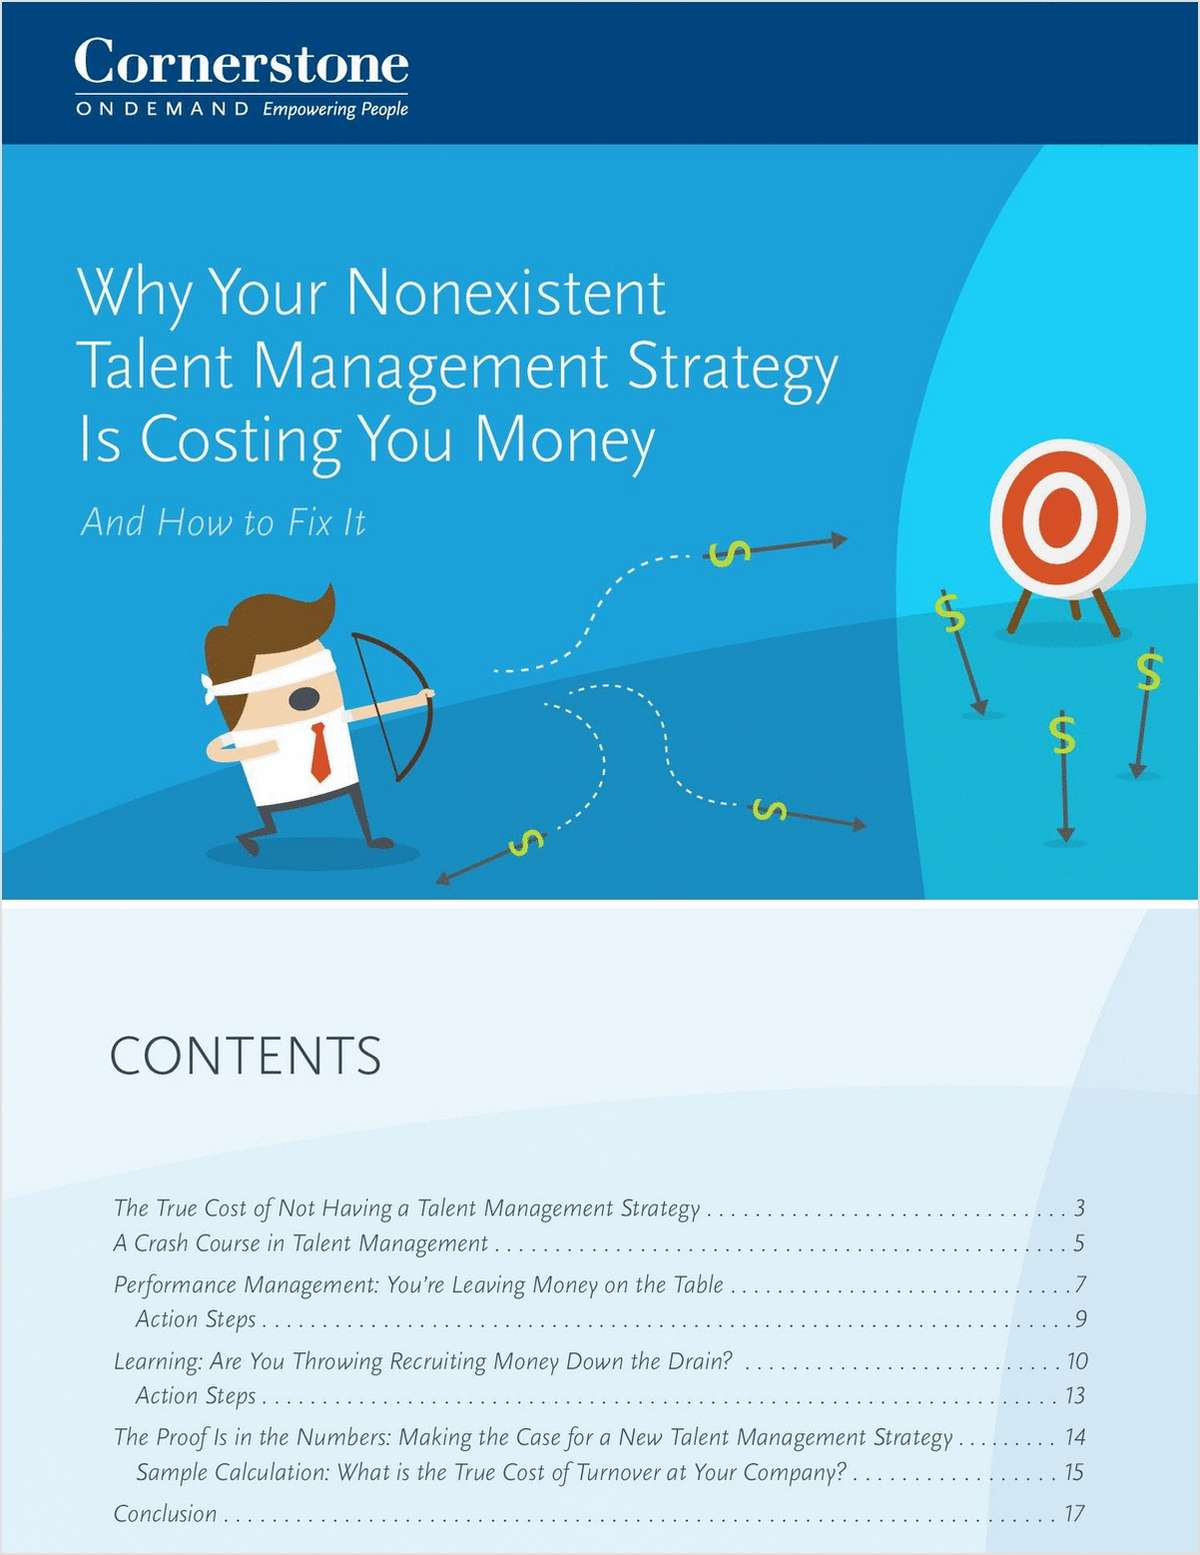 Why Your Nonexistent Talent Management Strategy is Costing You Money